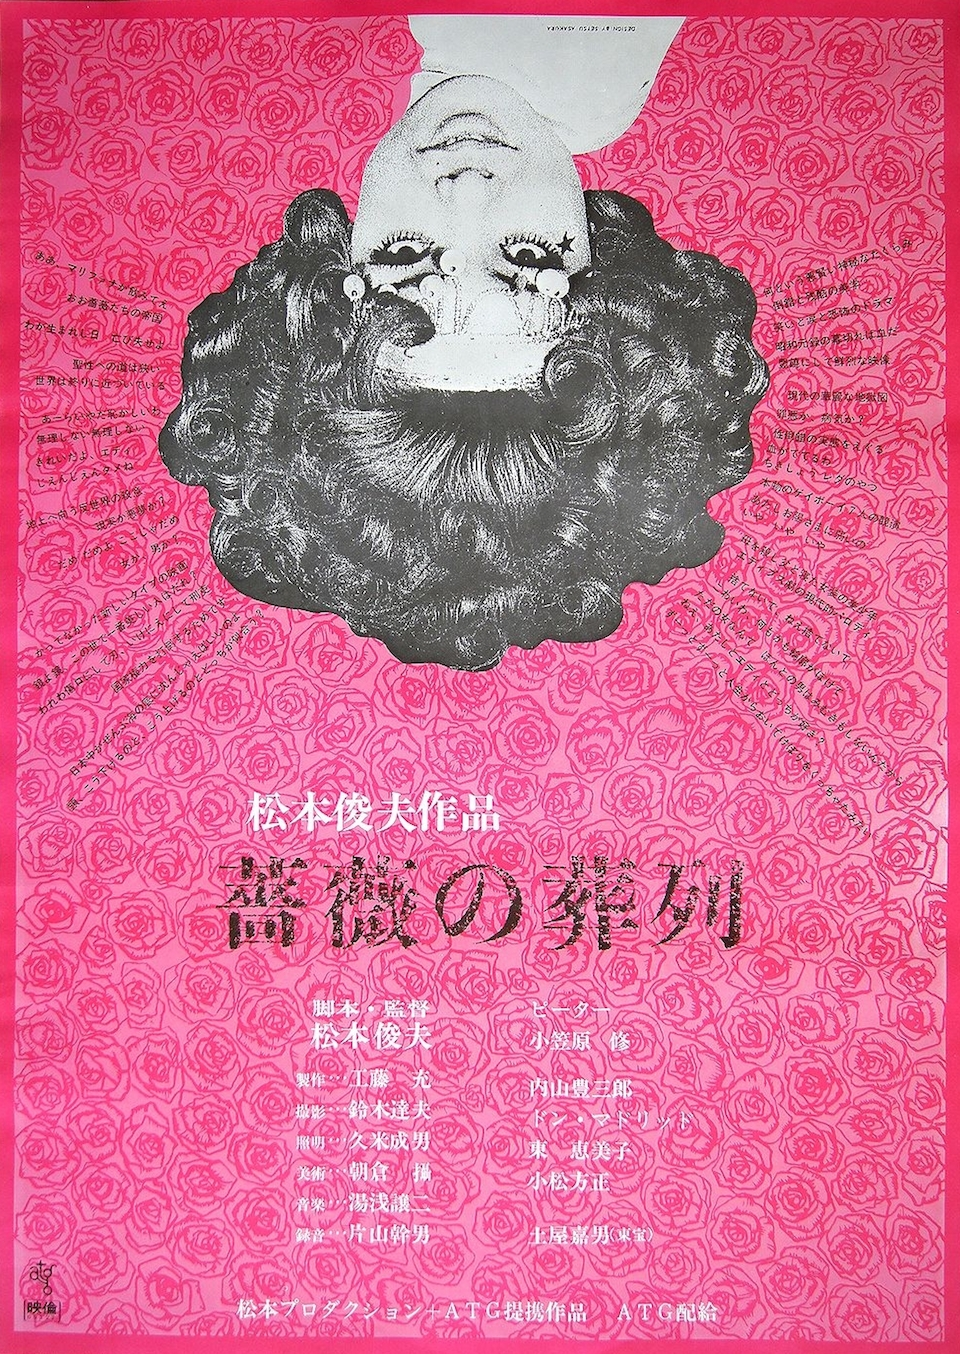 funeral-parade-of-roses-poster